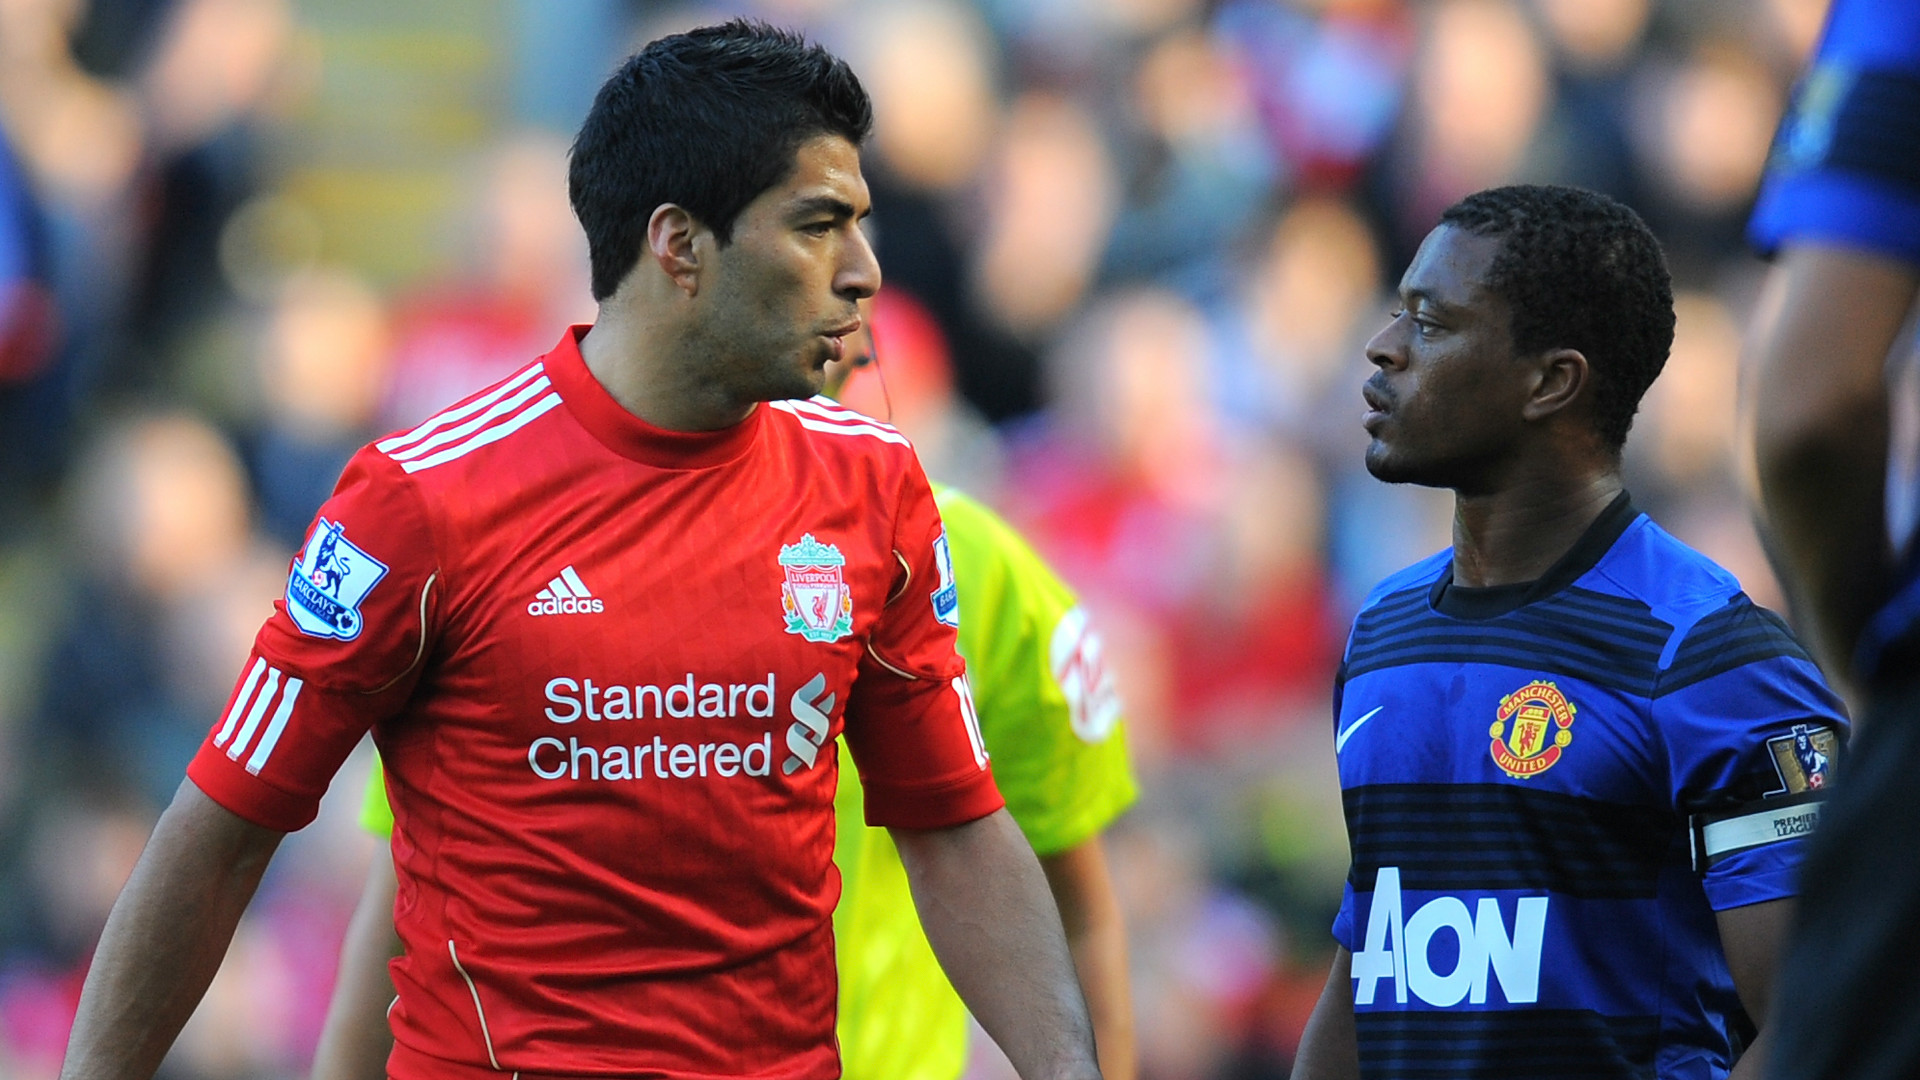 Luis Suarez and Patrice Evra playing for Liverpool and Manchester United respectively.